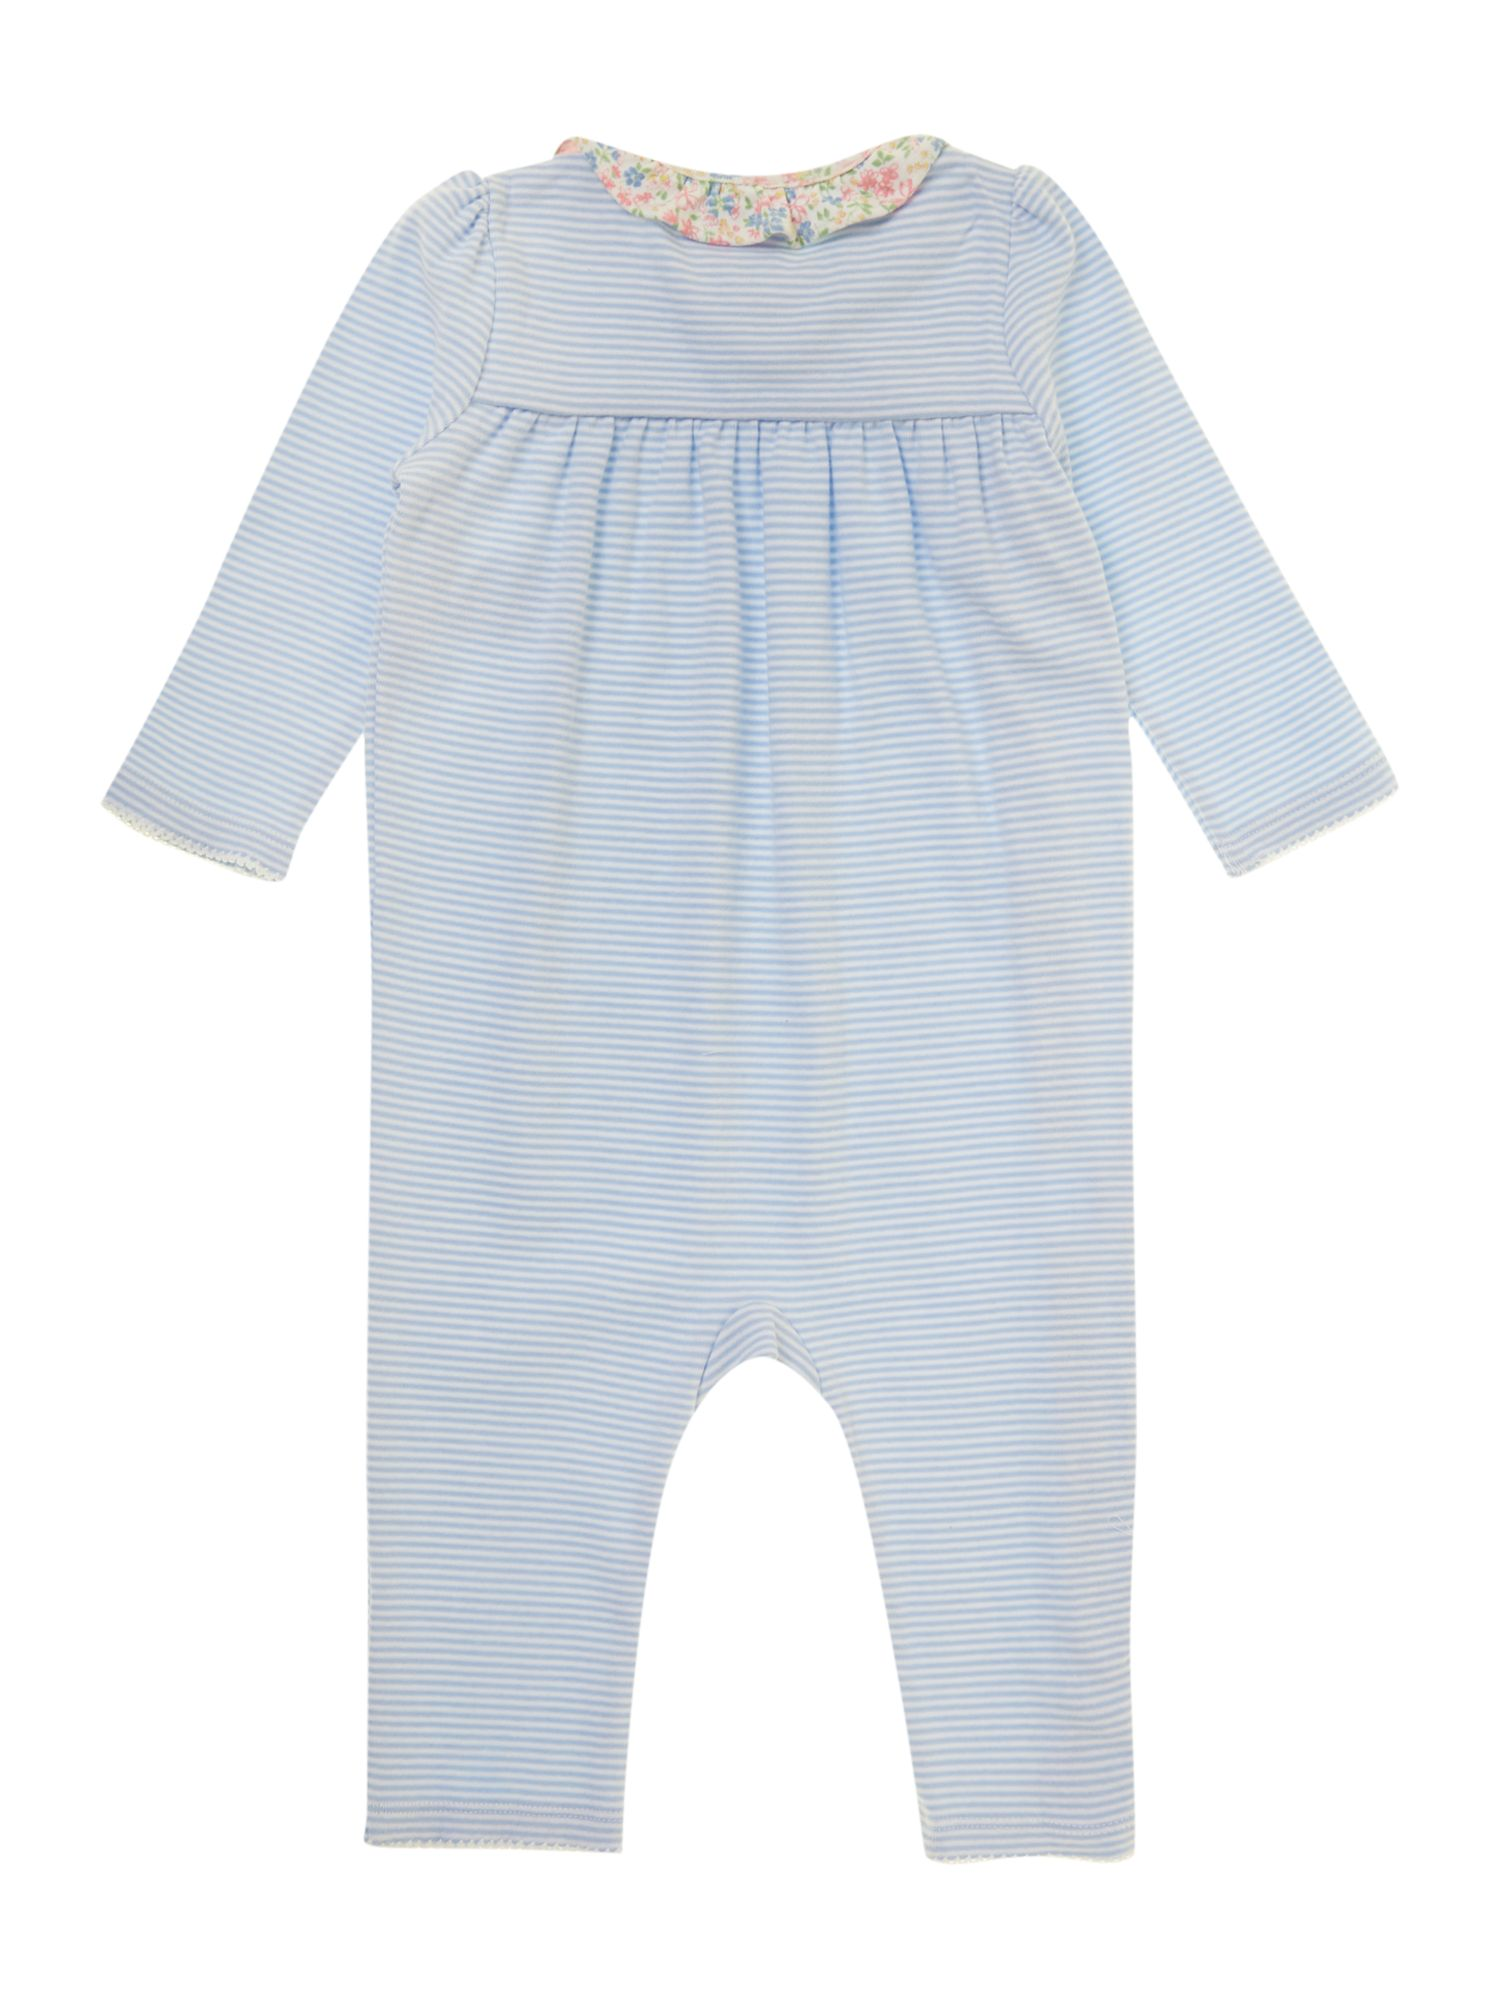 Baby girls striped wrap all-in-one